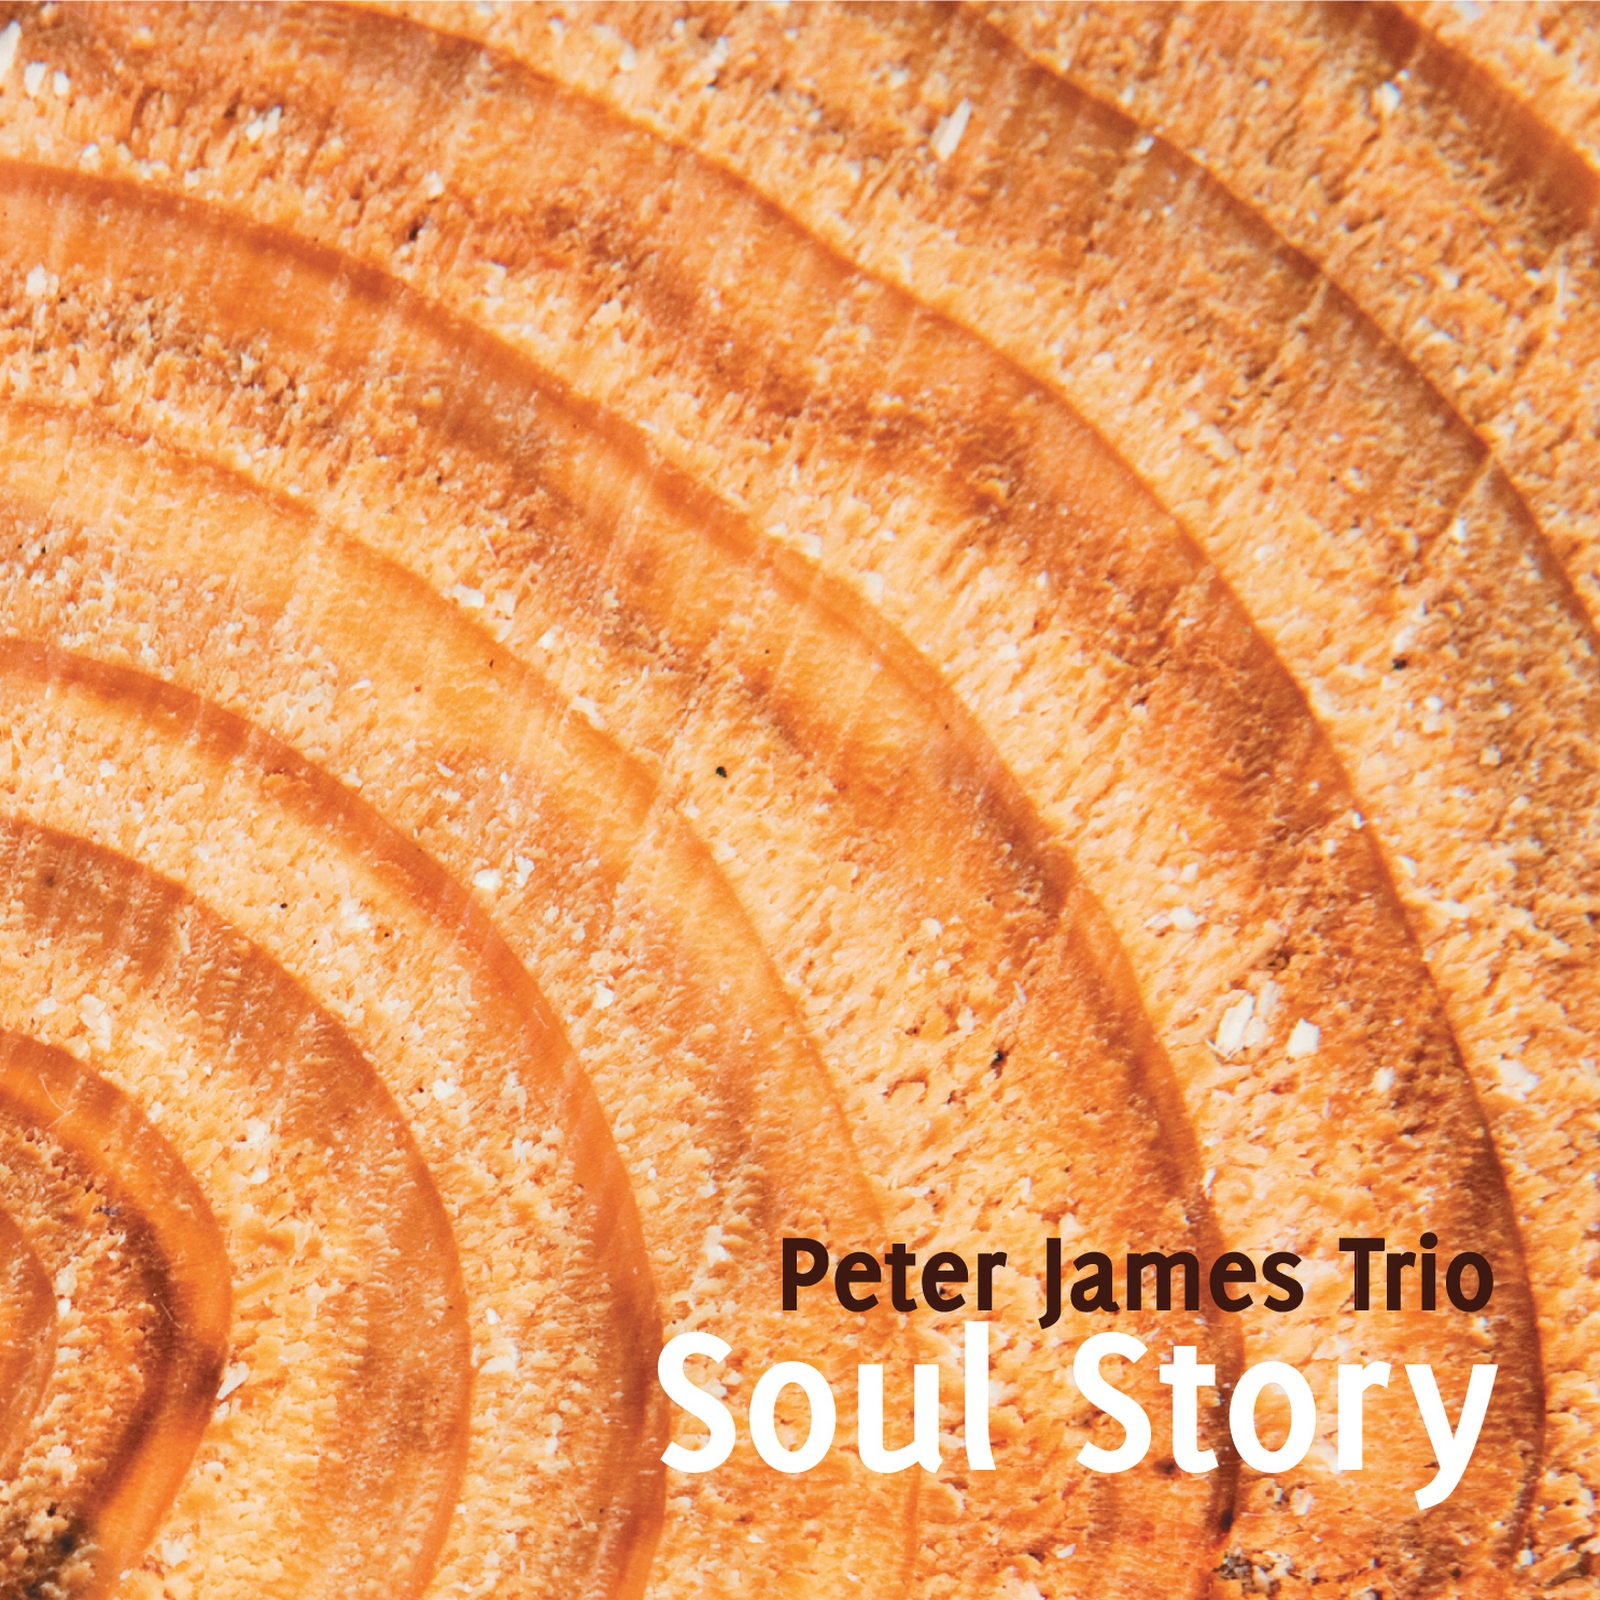 (2011) Peter James Trio - Soul Story